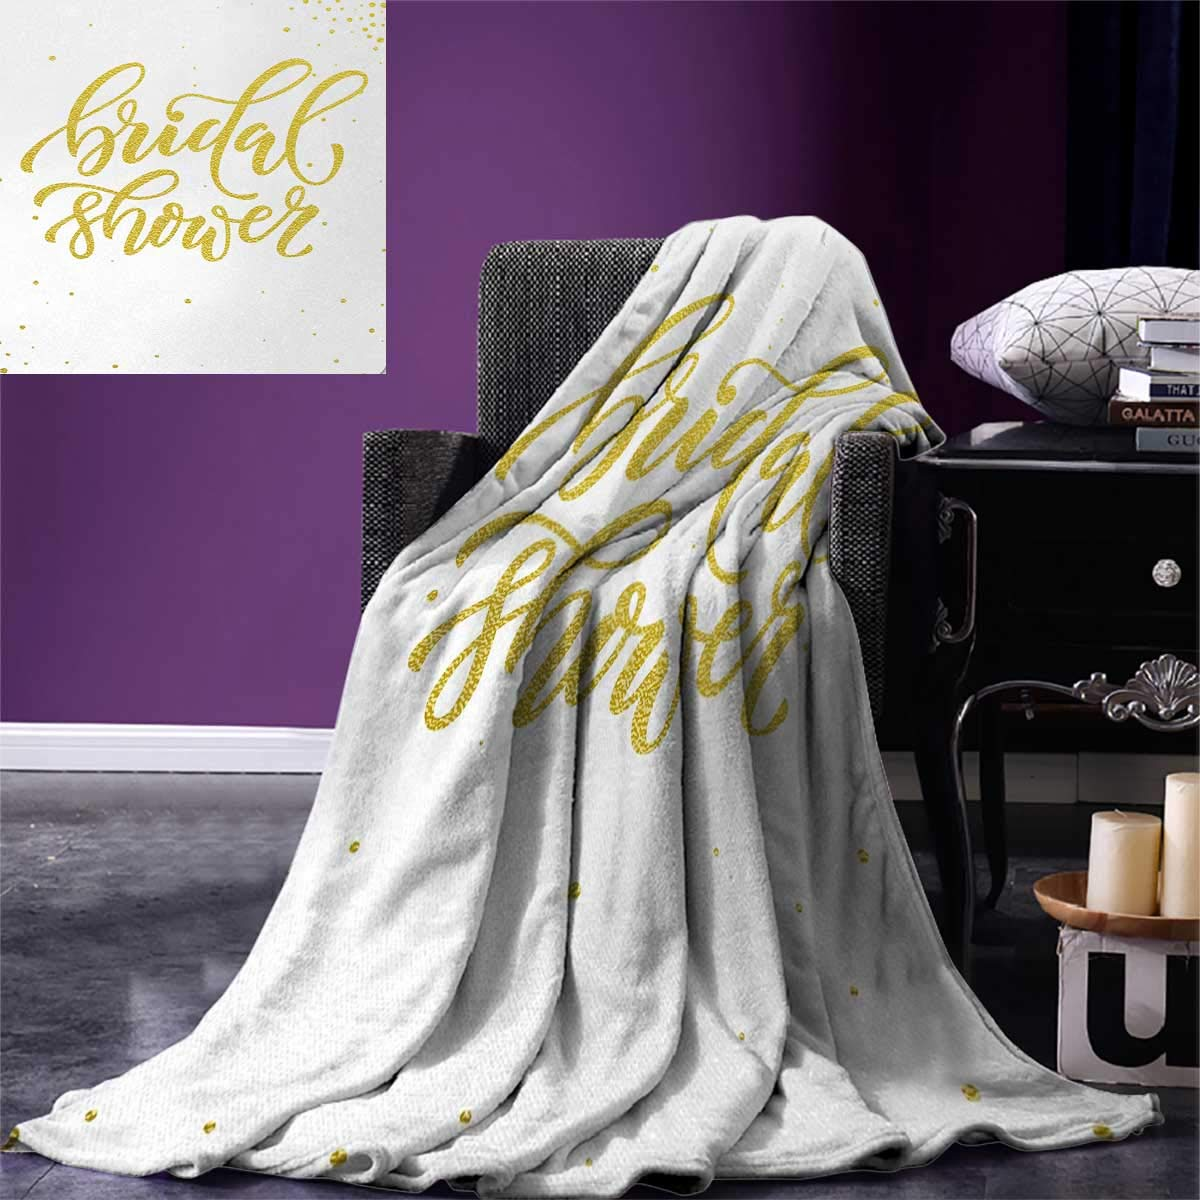 Bridal Shower Digital Printing Blanket Hand Written Sketch Design Ivy Lettering Bride Party with Dots Image Summer Quilt Comforter 80''x60'' Yellow and White